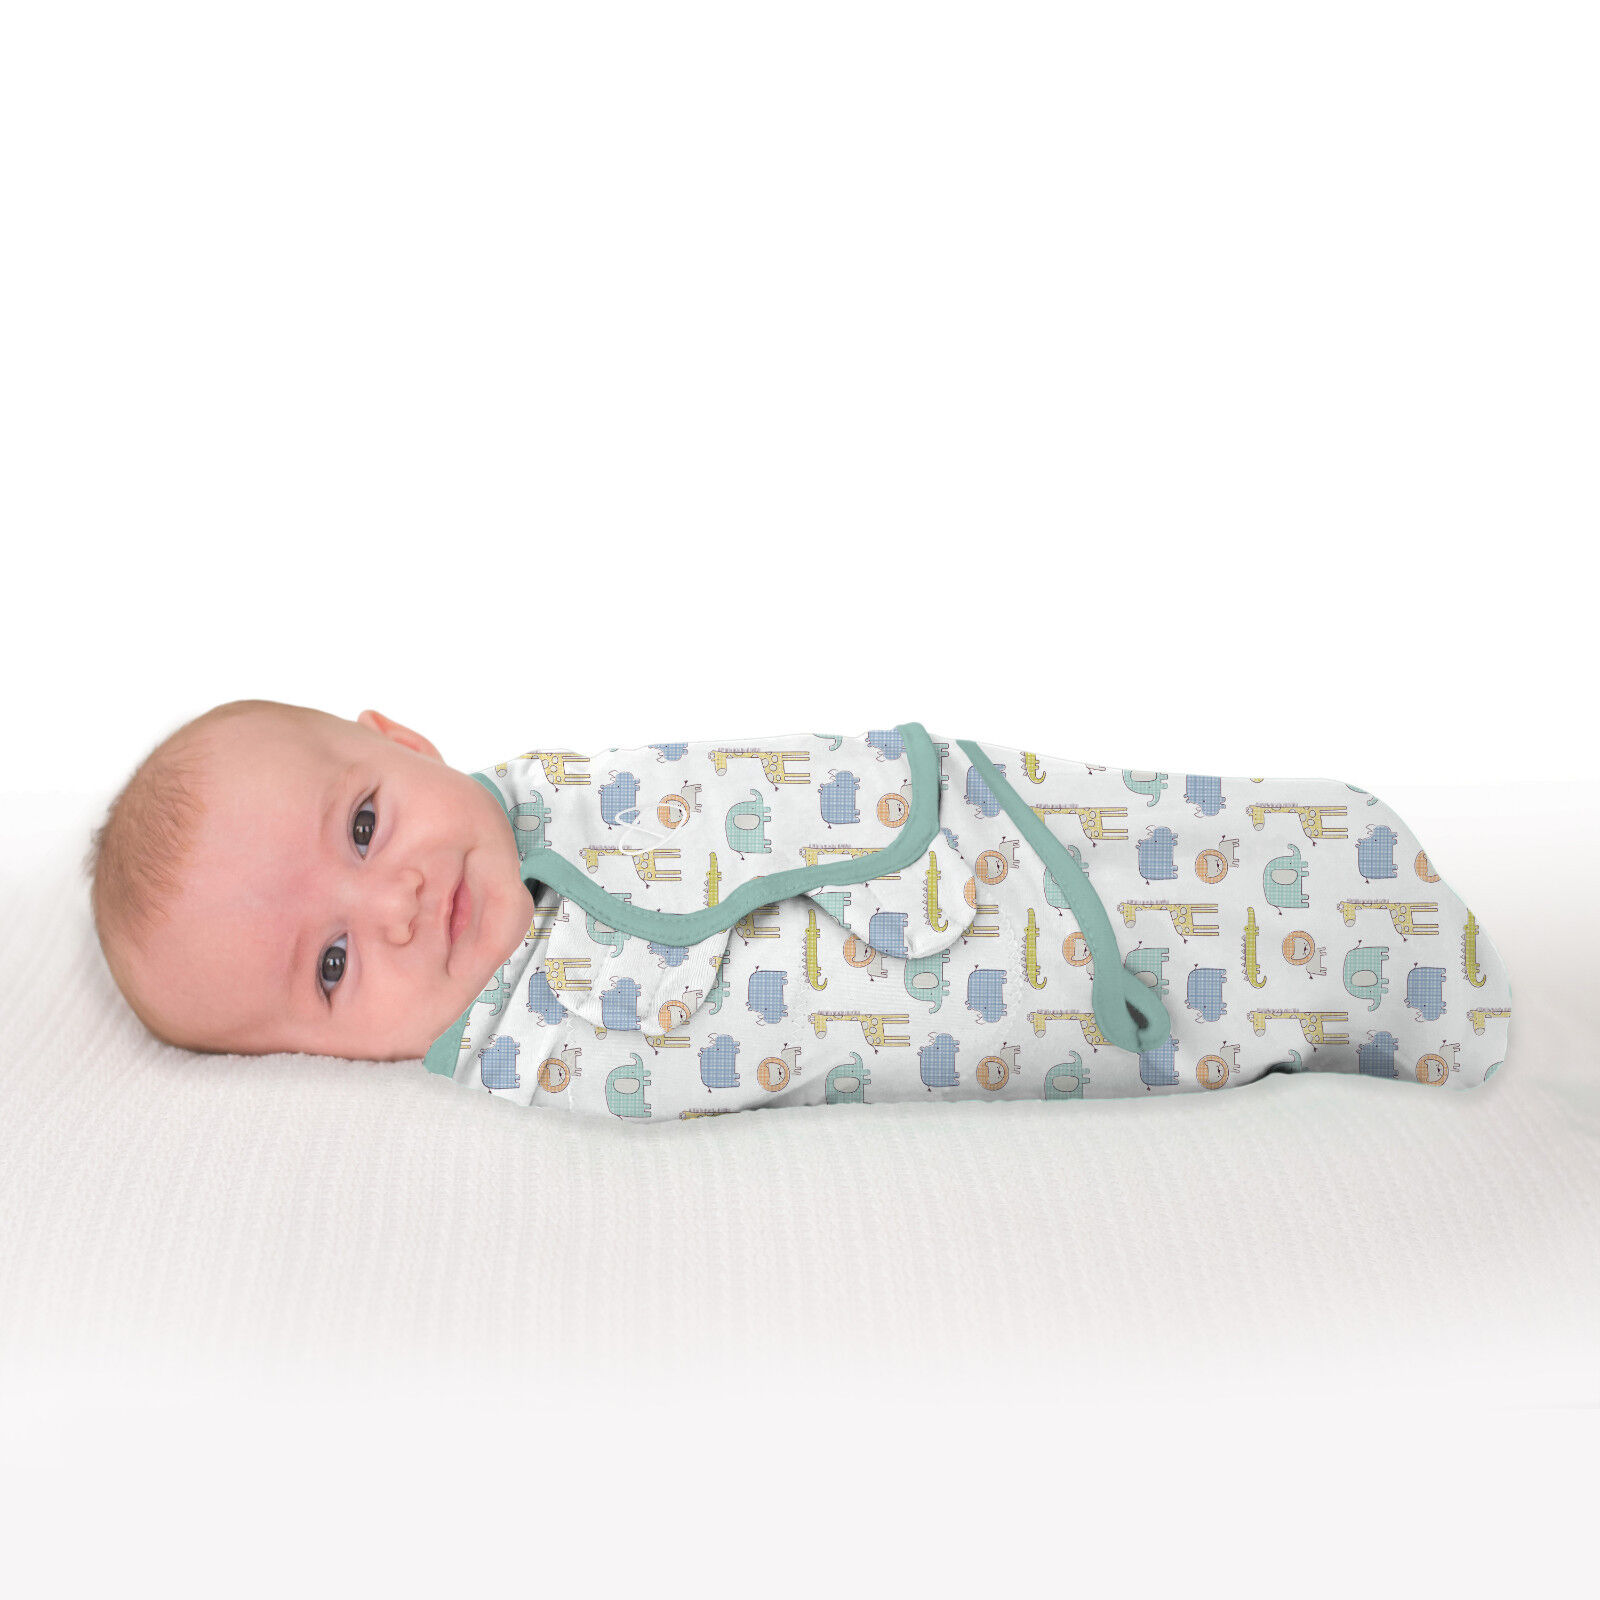 SwaddleMe Puckdecke Swaddle Baby Pucktuch Puckdecke